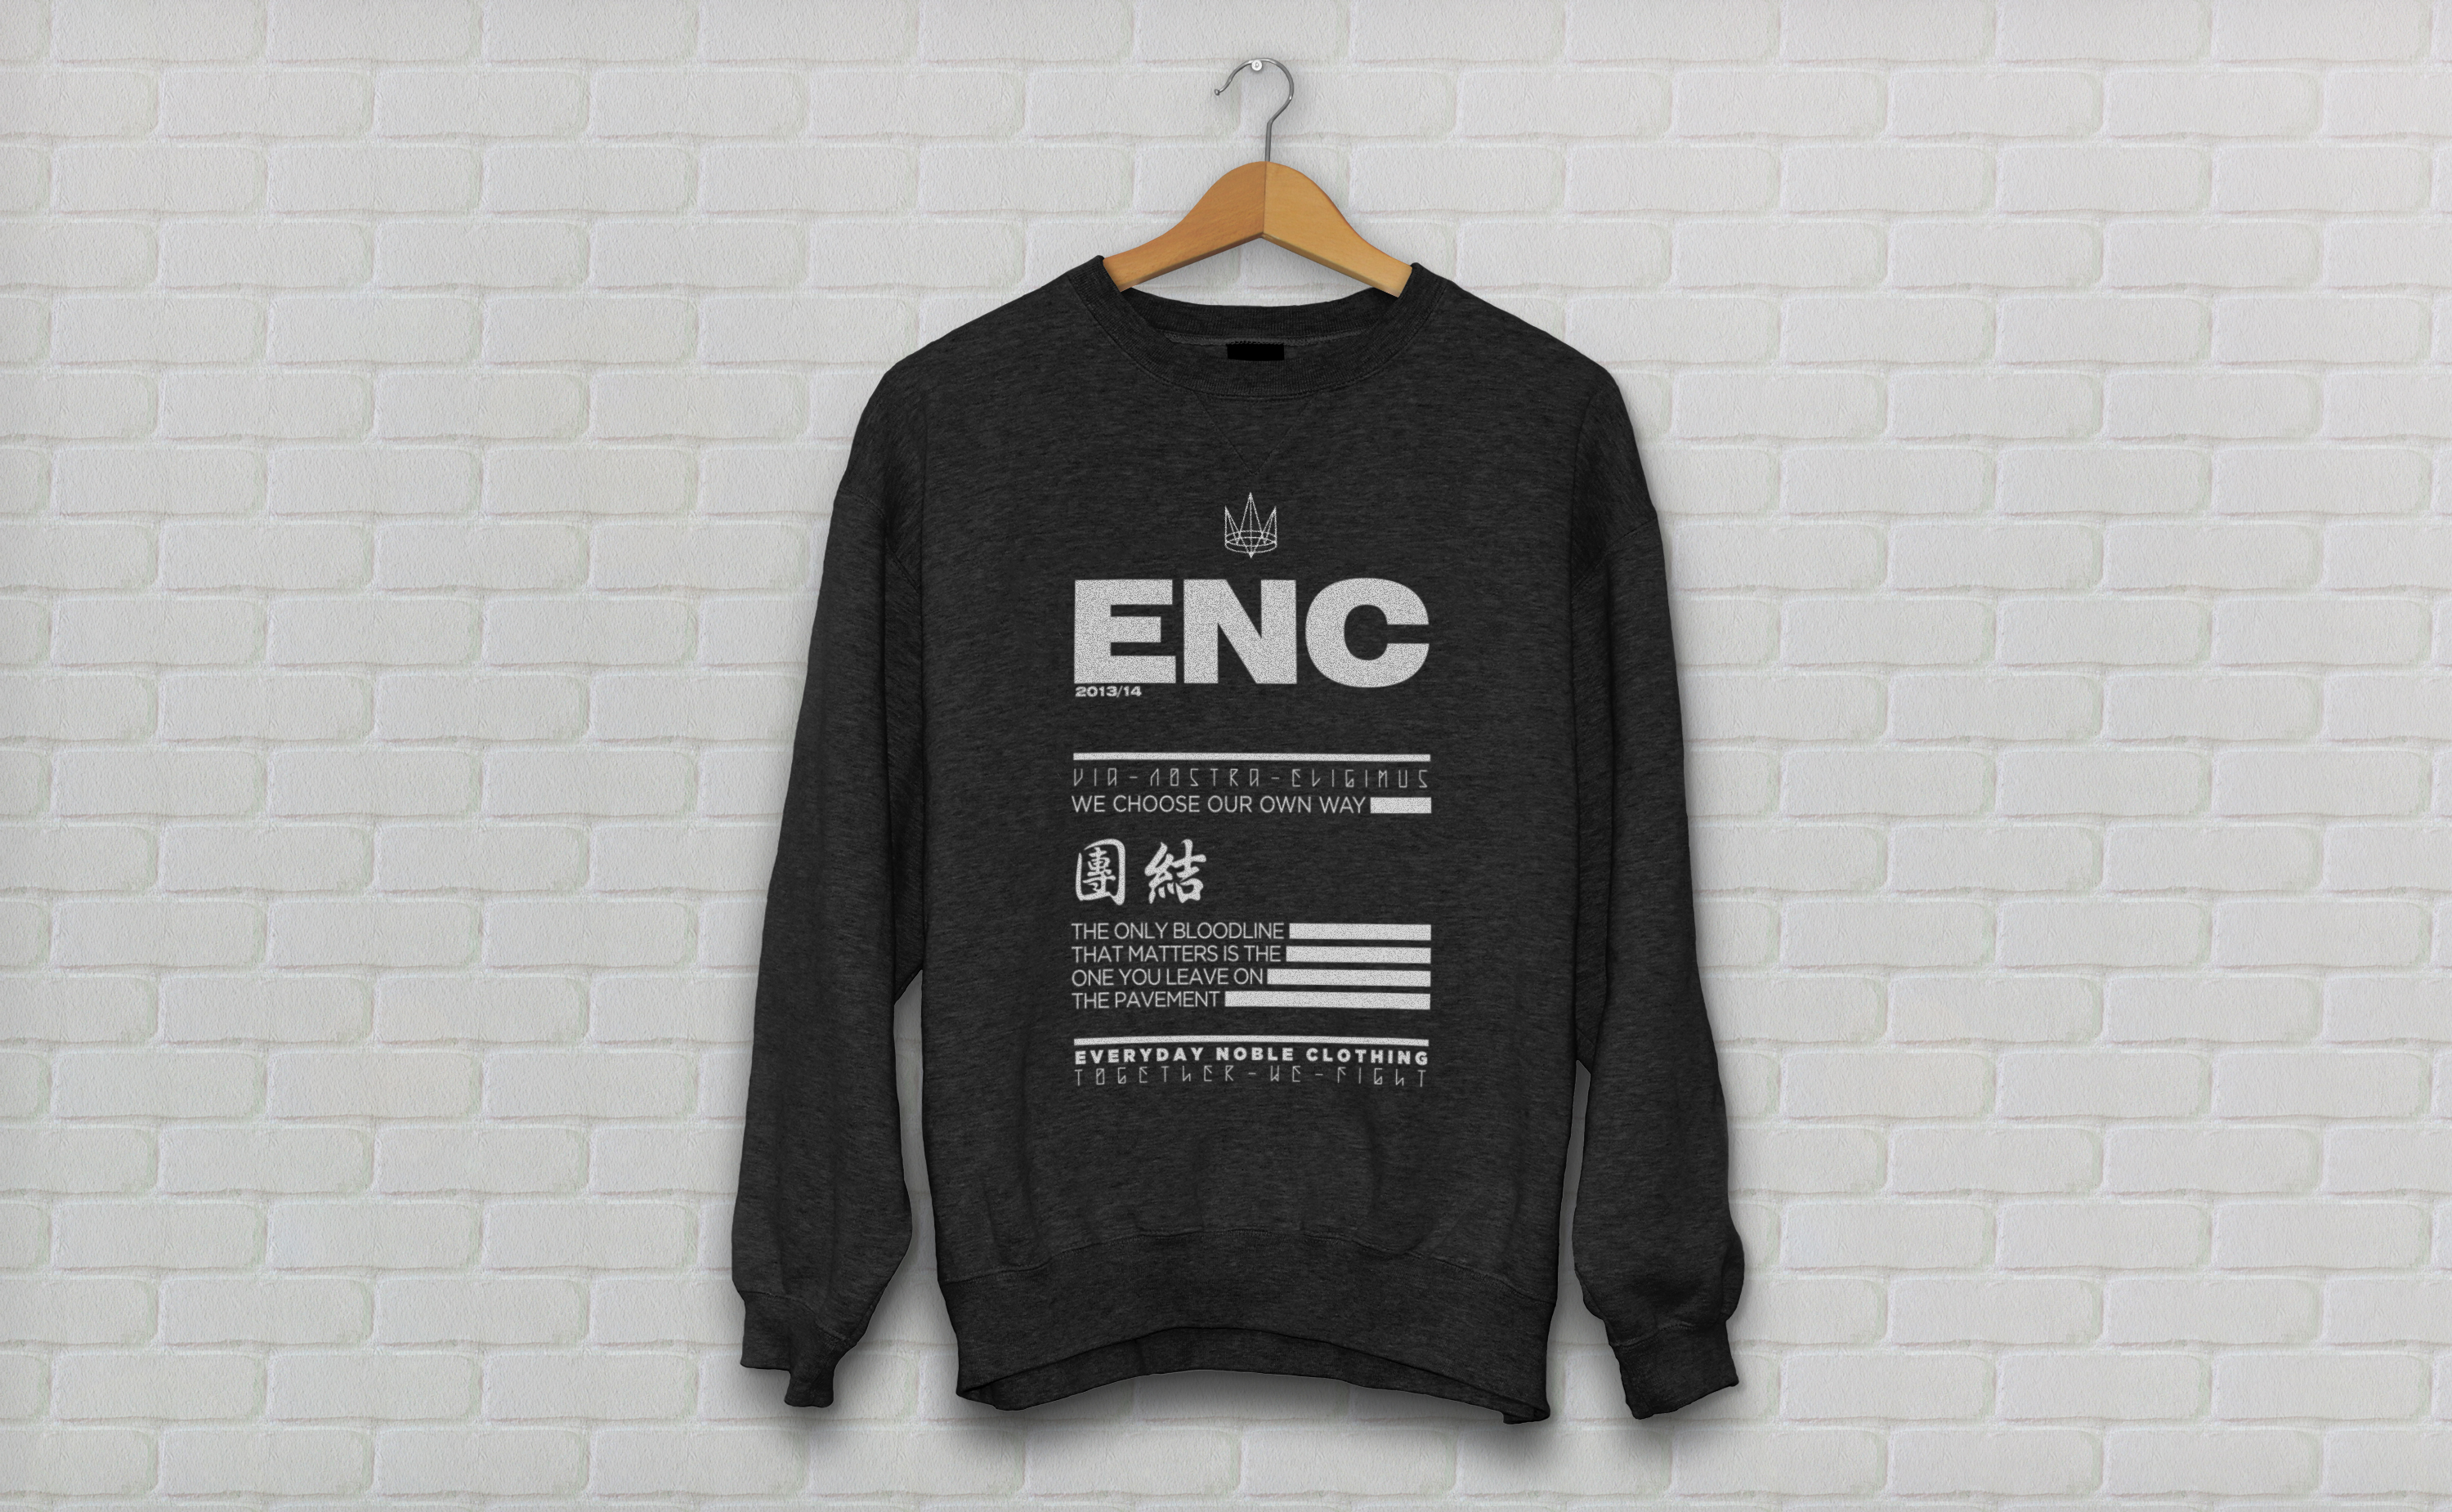 ENC Jumper Design (2014)